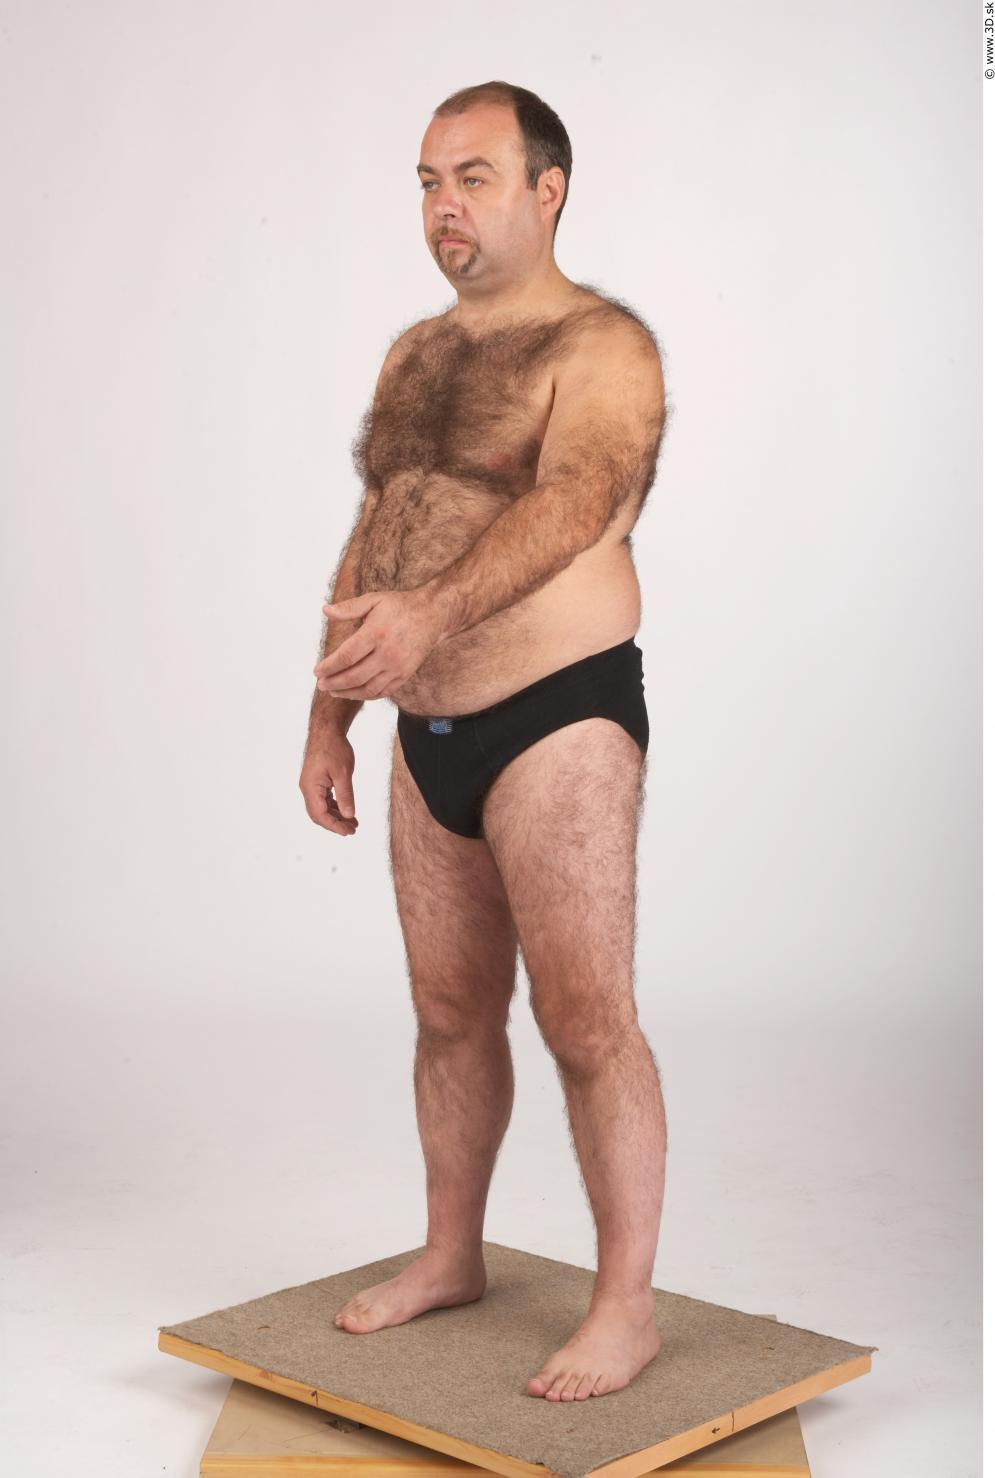 Image from Matej - Hairy male photo refences from 3D.sk - 288611matej_0068.jpg